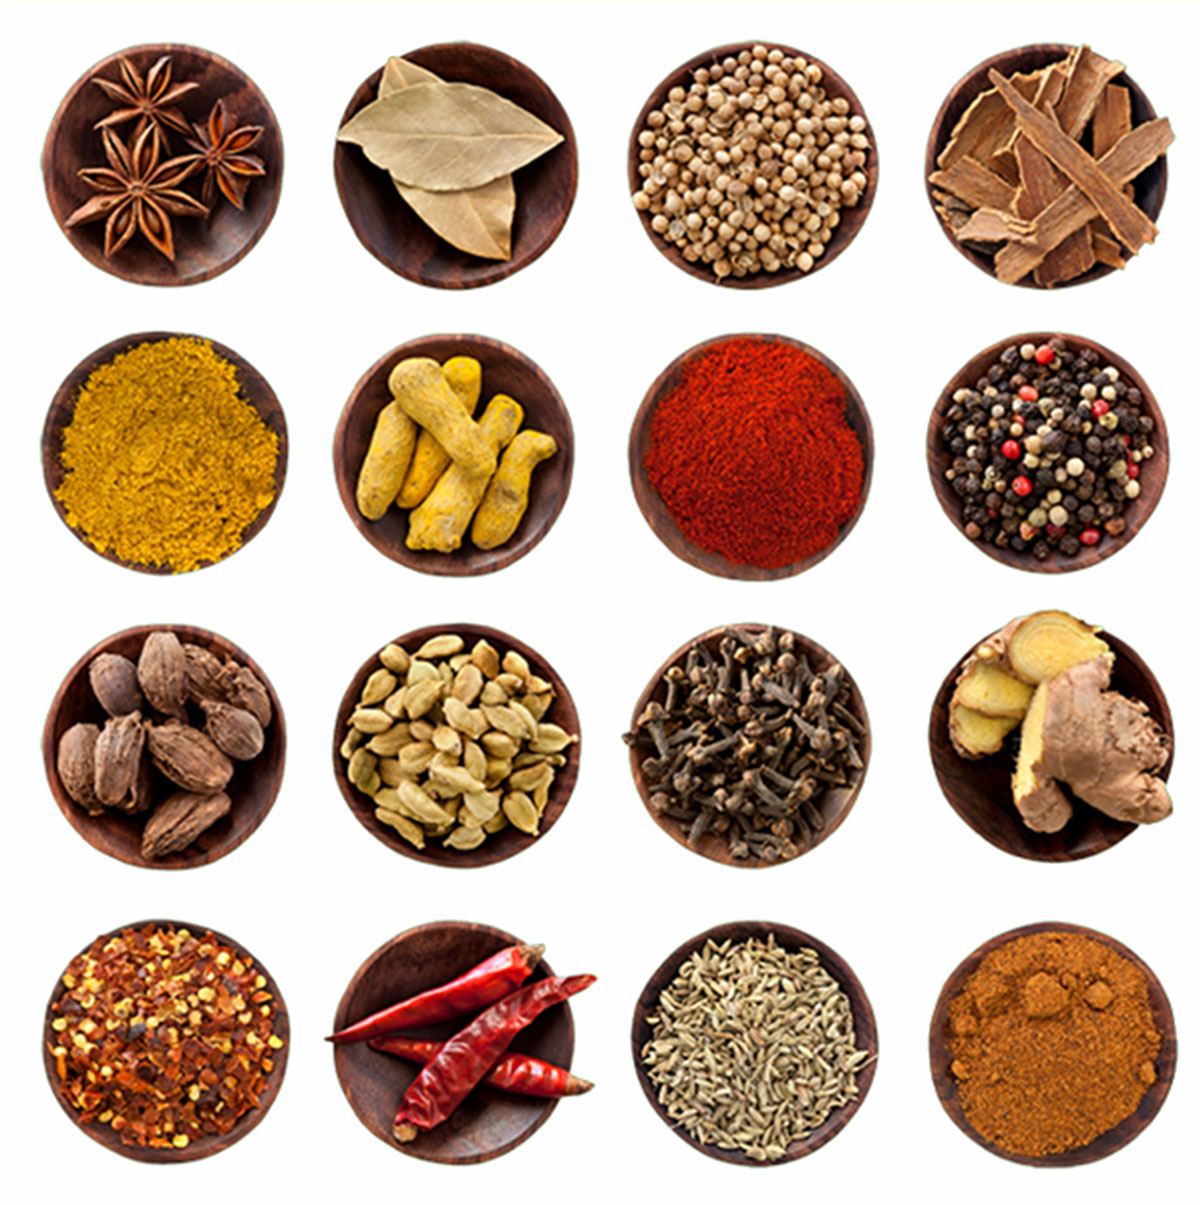 The World of Herbs & Spices